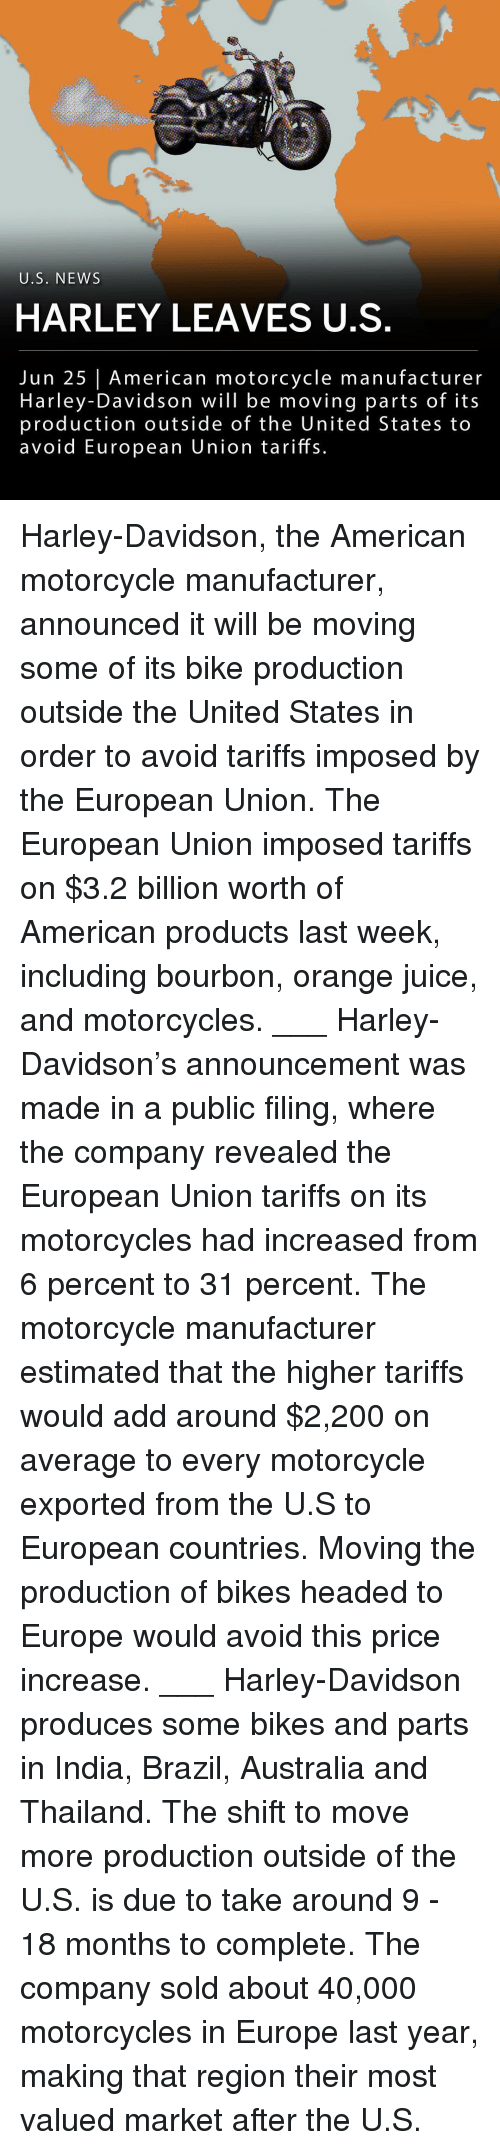 European Union: U.S. NEWS  HARLEY LEAVES U.S  Jun 25 American motorcycle manufacturer  Harley-Davidson will be moving parts of its  production outside of the United States to  avoid European Union tariffs. Harley-Davidson, the American motorcycle manufacturer, announced it will be moving some of its bike production outside the United States in order to avoid tariffs imposed by the European Union. The European Union imposed tariffs on $3.2 billion worth of American products last week, including bourbon, orange juice, and motorcycles. ___ Harley-Davidson's announcement was made in a public filing, where the company revealed the European Union tariffs on its motorcycles had increased from 6 percent to 31 percent. The motorcycle manufacturer estimated that the higher tariffs would add around $2,200 on average to every motorcycle exported from the U.S to European countries. Moving the production of bikes headed to Europe would avoid this price increase. ___ Harley-Davidson produces some bikes and parts in India, Brazil, Australia and Thailand. The shift to move more production outside of the U.S. is due to take around 9 - 18 months to complete. The company sold about 40,000 motorcycles in Europe last year, making that region their most valued market after the U.S.